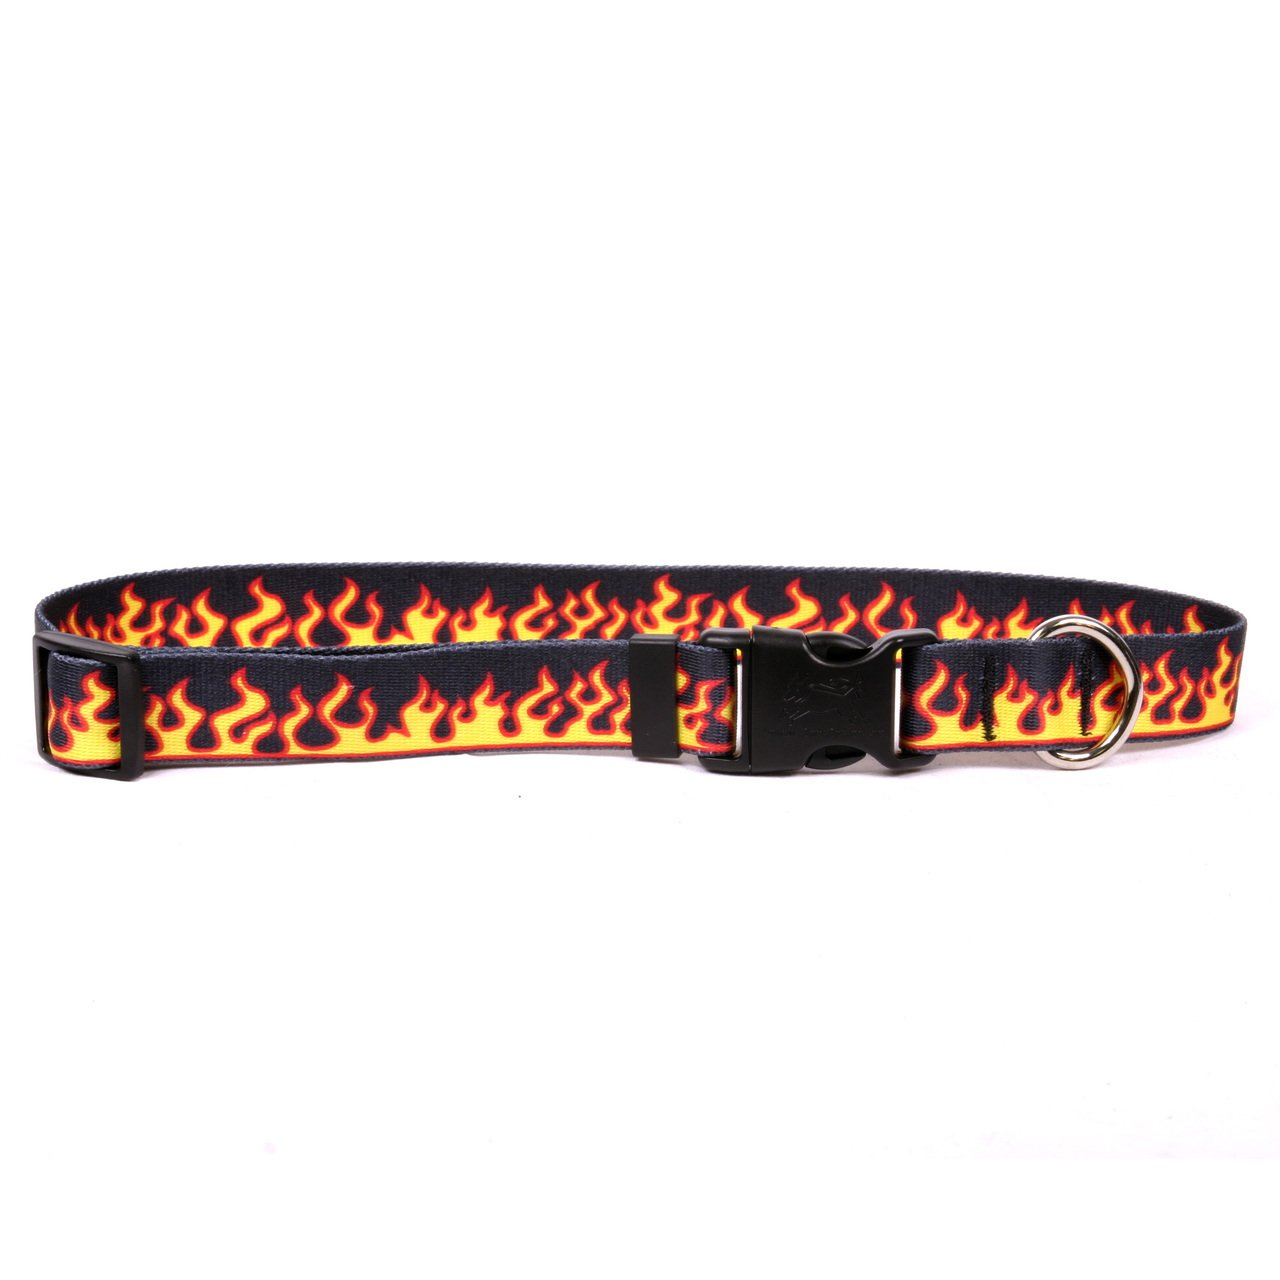 Yellow Dog Design Red Flames Dog Collar with Tag-A-Long ID Tag System-Large-1'' Wide and fits Neck 18 to 28''